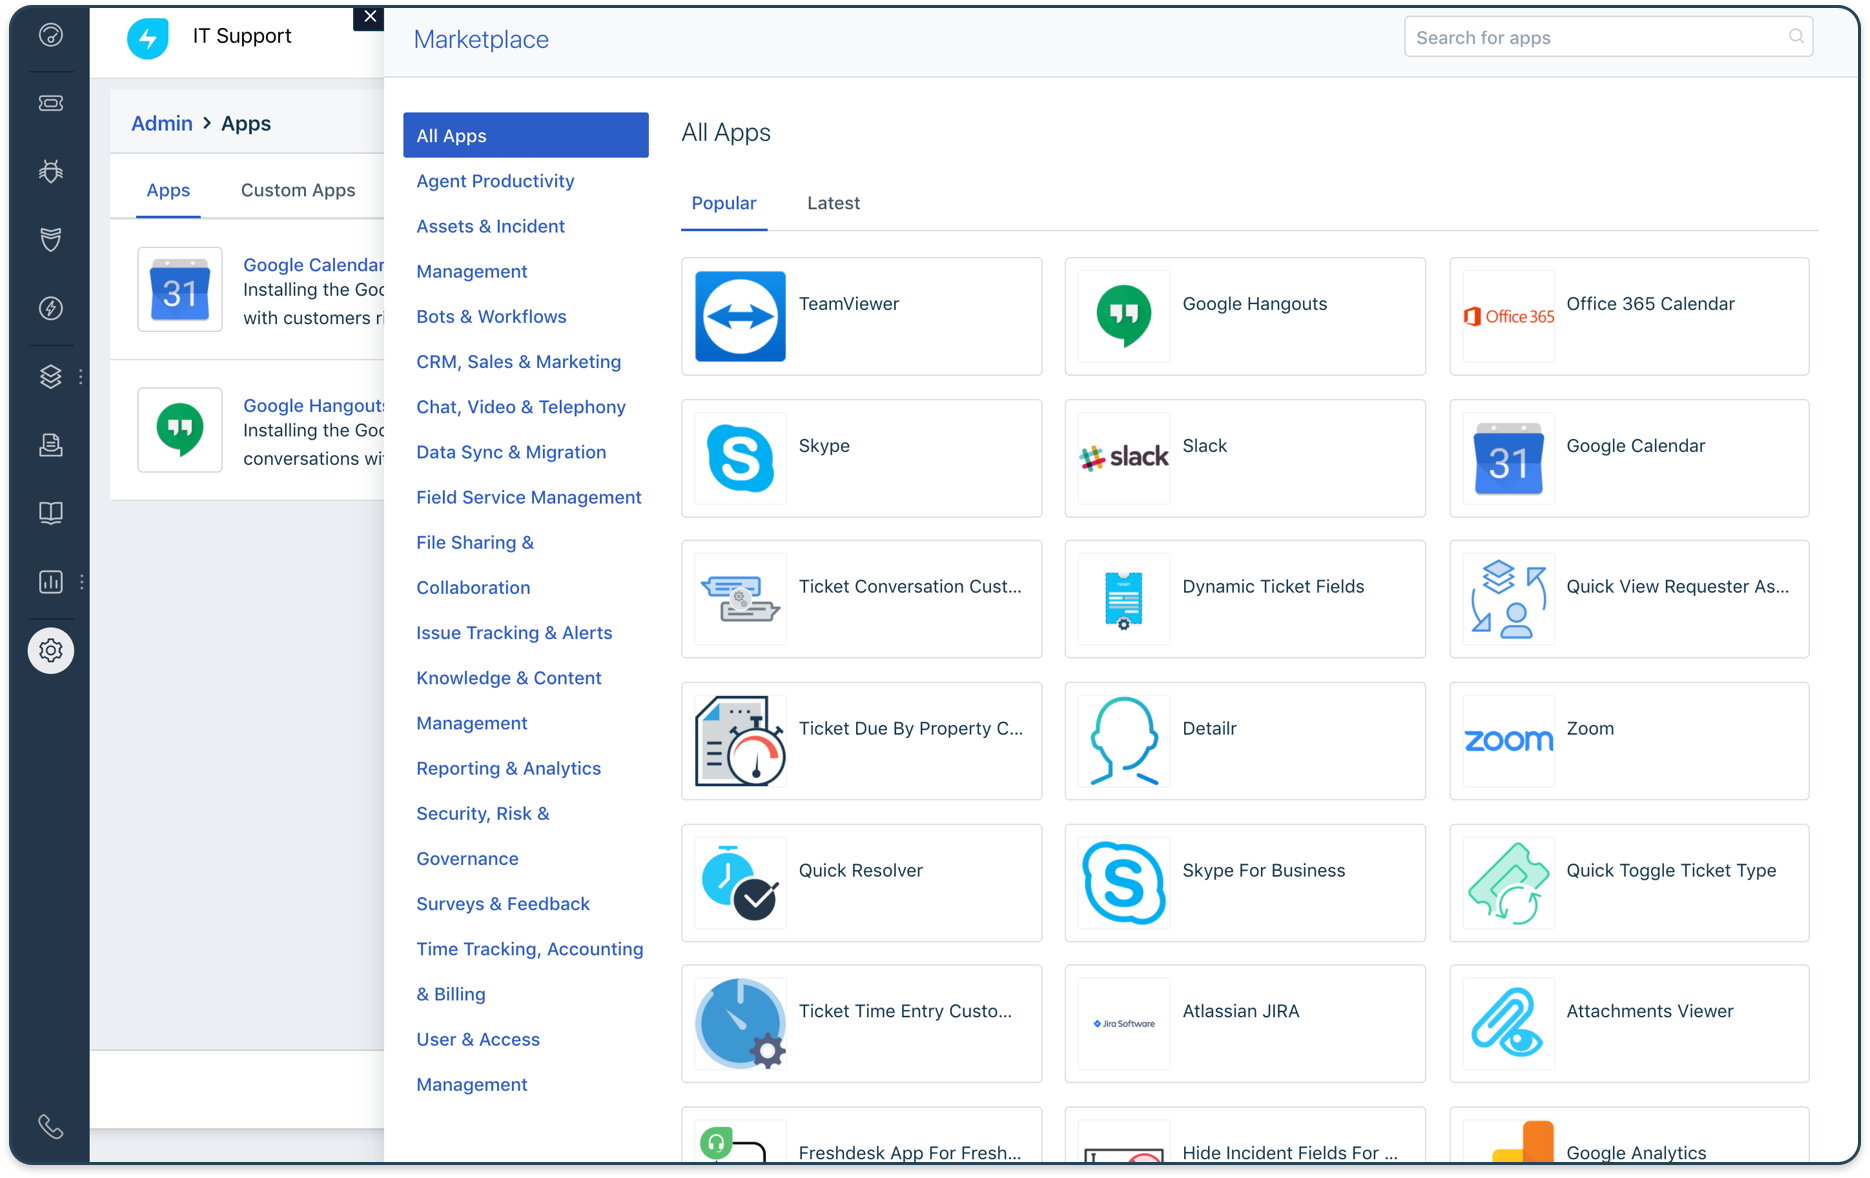 Meet your expanding customer needs with the open and flexible Freshworks Platform providing rich API for custom integrations and an apps marketplace.